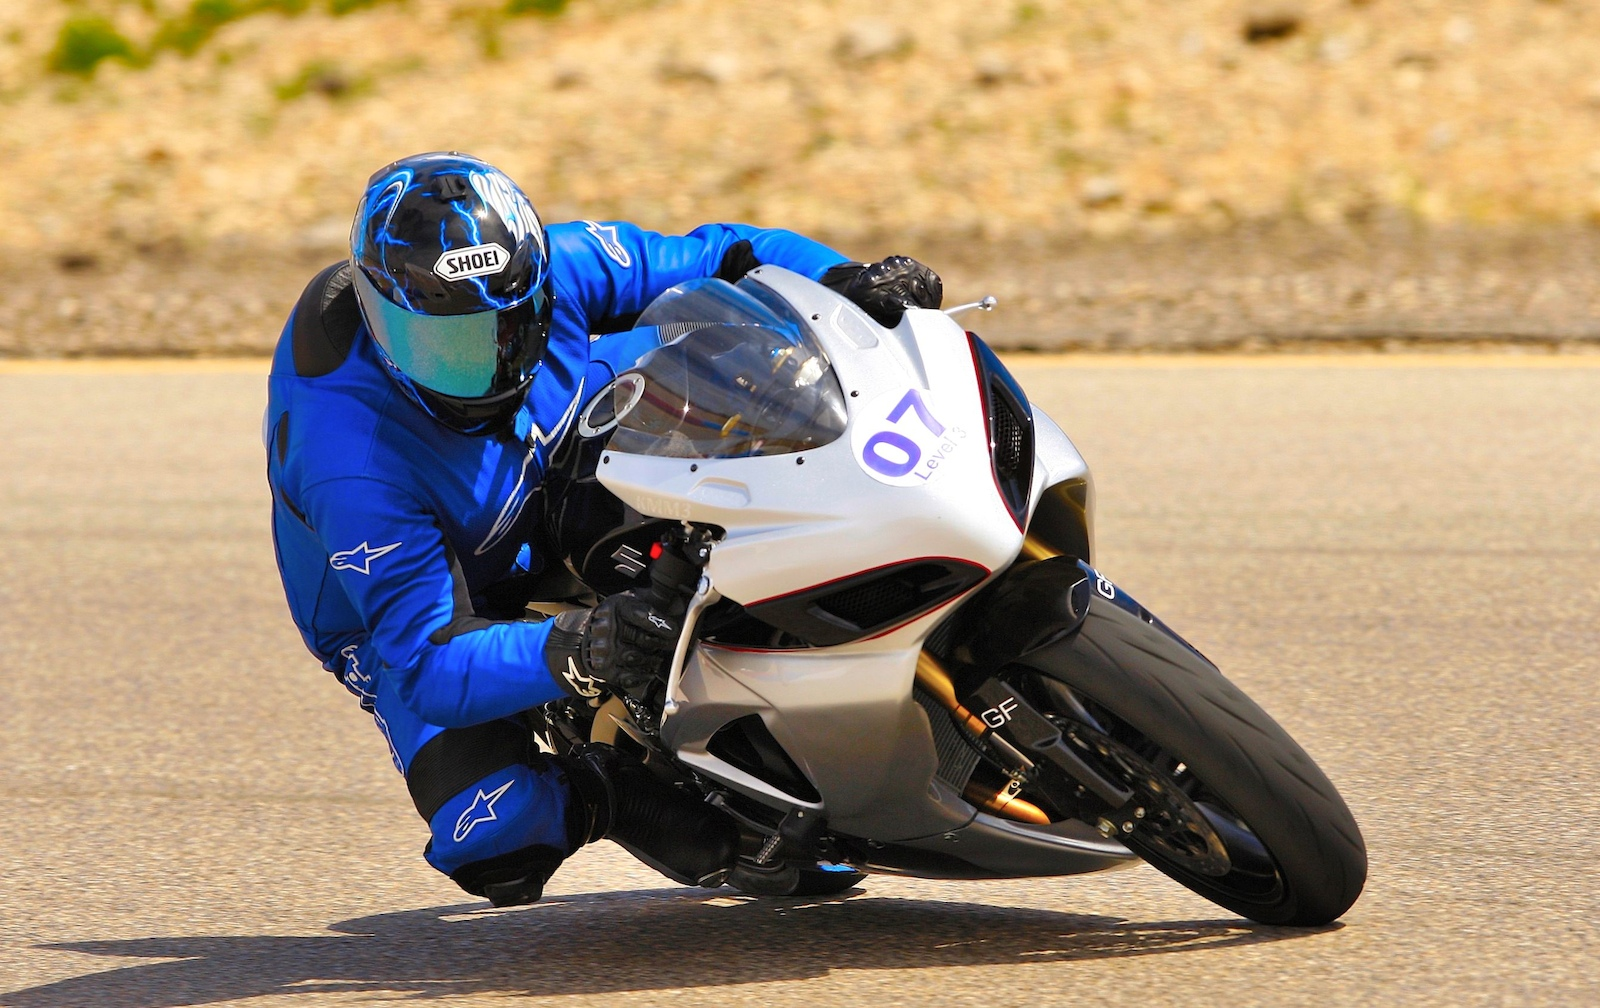 trackday on the gixxer sixxer